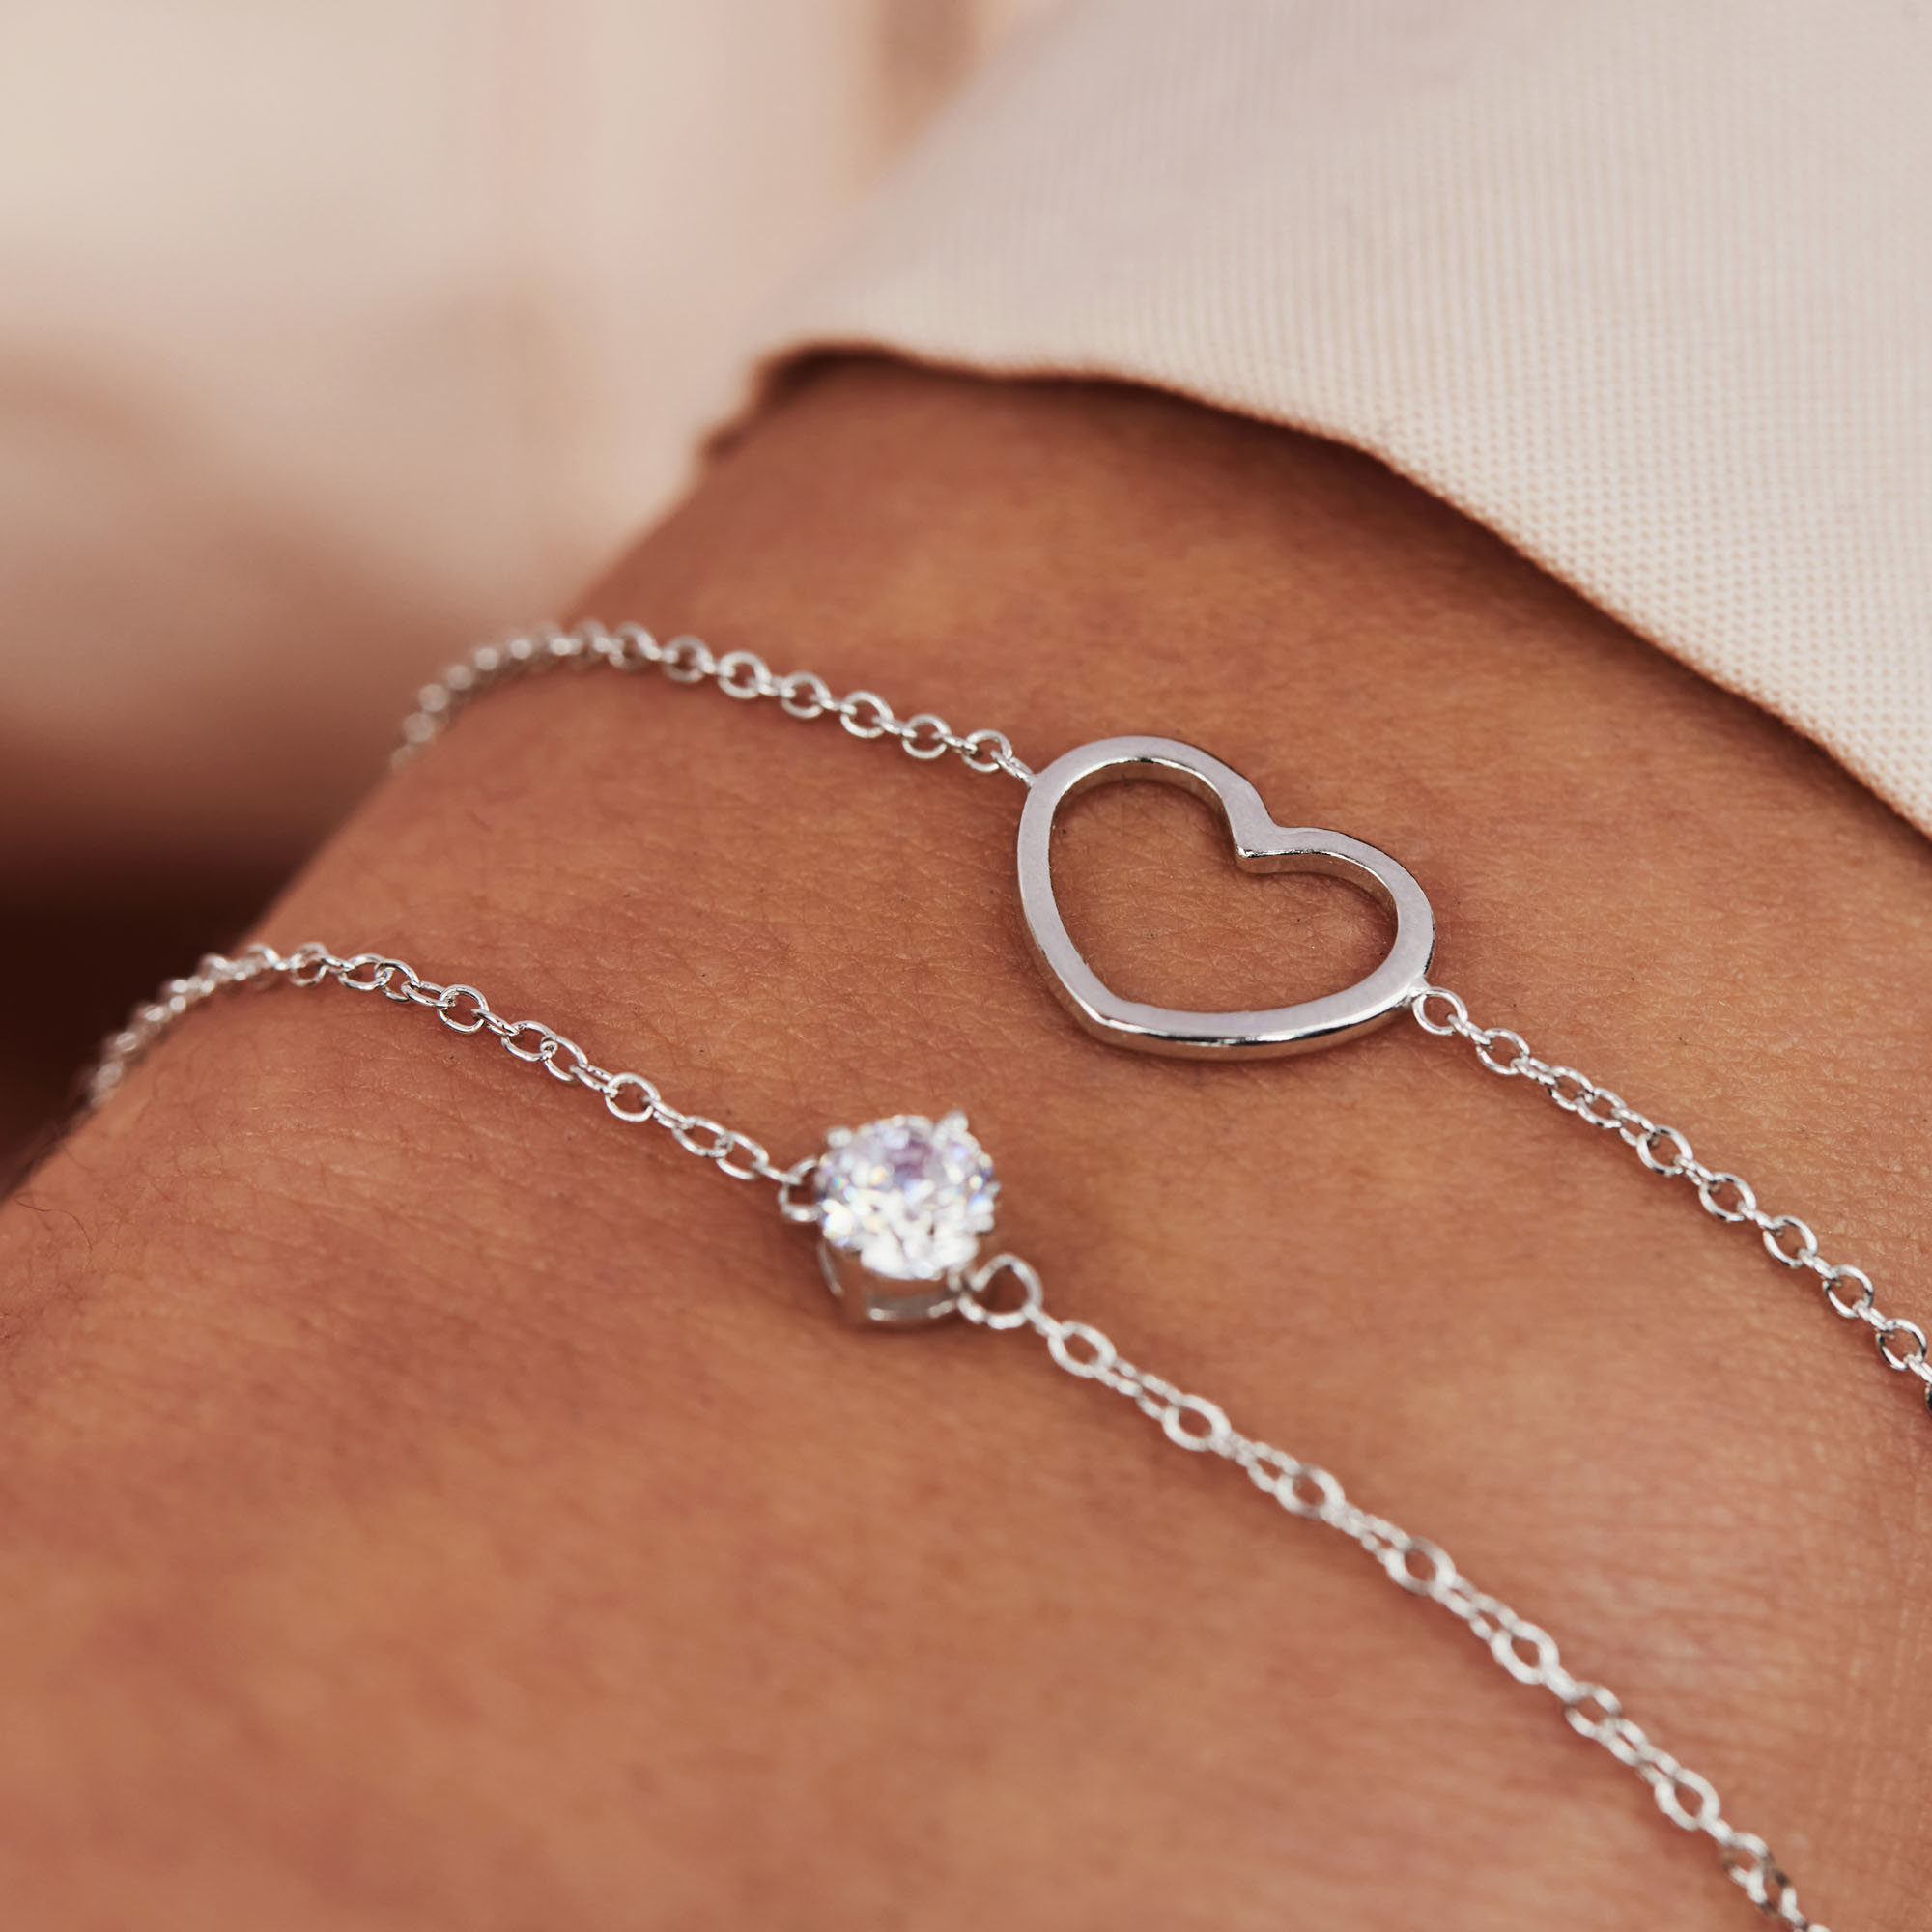 Selected Jewels Aimée 925 sterling silver bracelet with heart